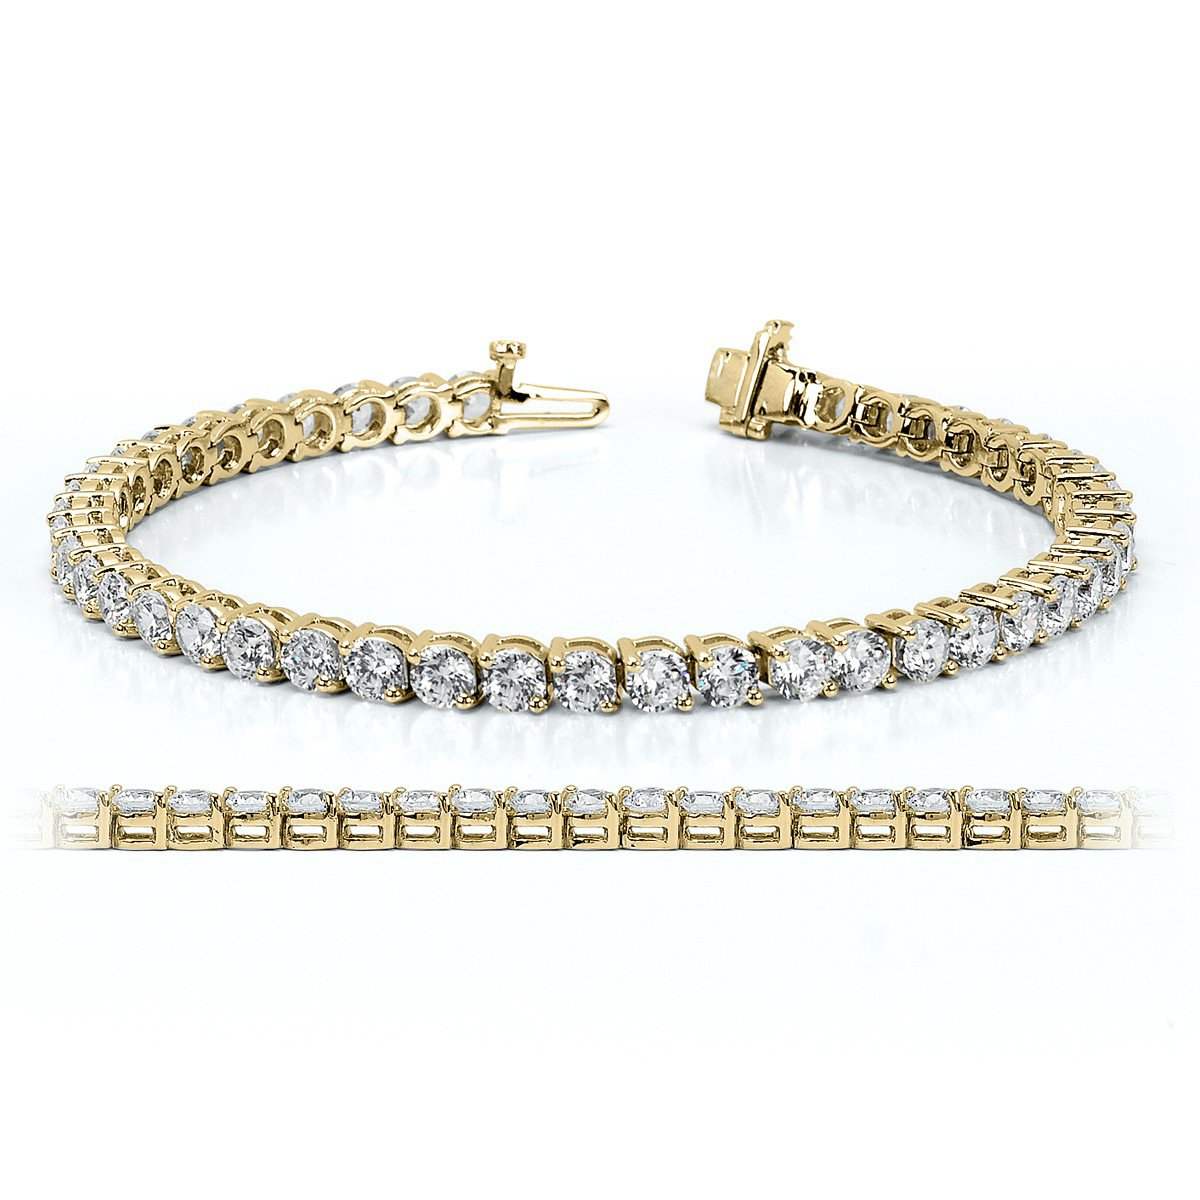 NYC Sterling Women 4MM Round Cubic Zirconia Tennis Bracelet In Rhodium & Gold Plated, 7.5 Inches (brass-plated-gold)